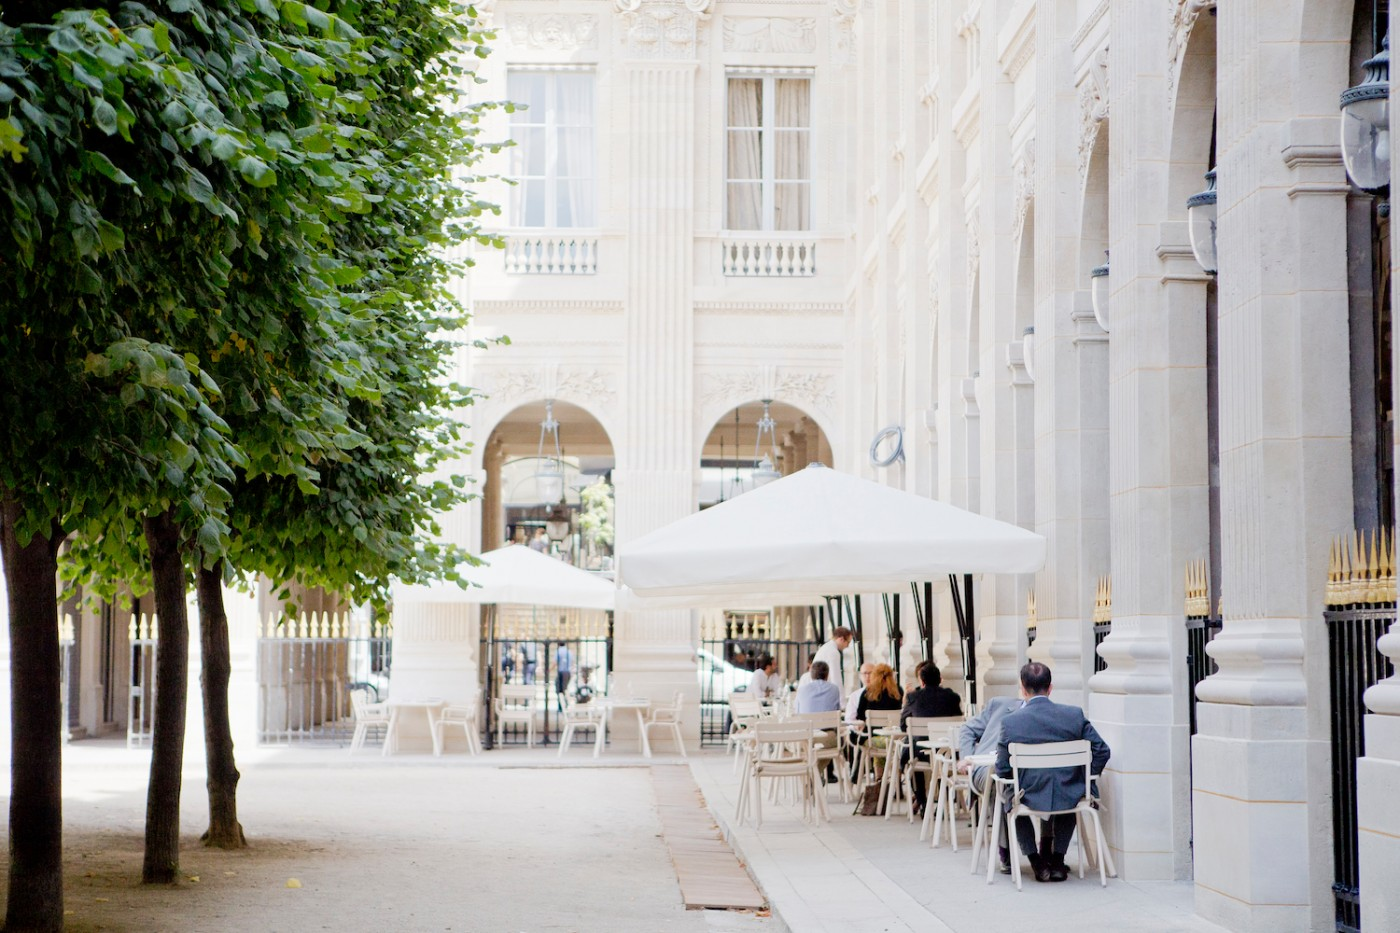 Hôtel Thérèse, hotel therese, where to stay in Paris, hotels in Paris